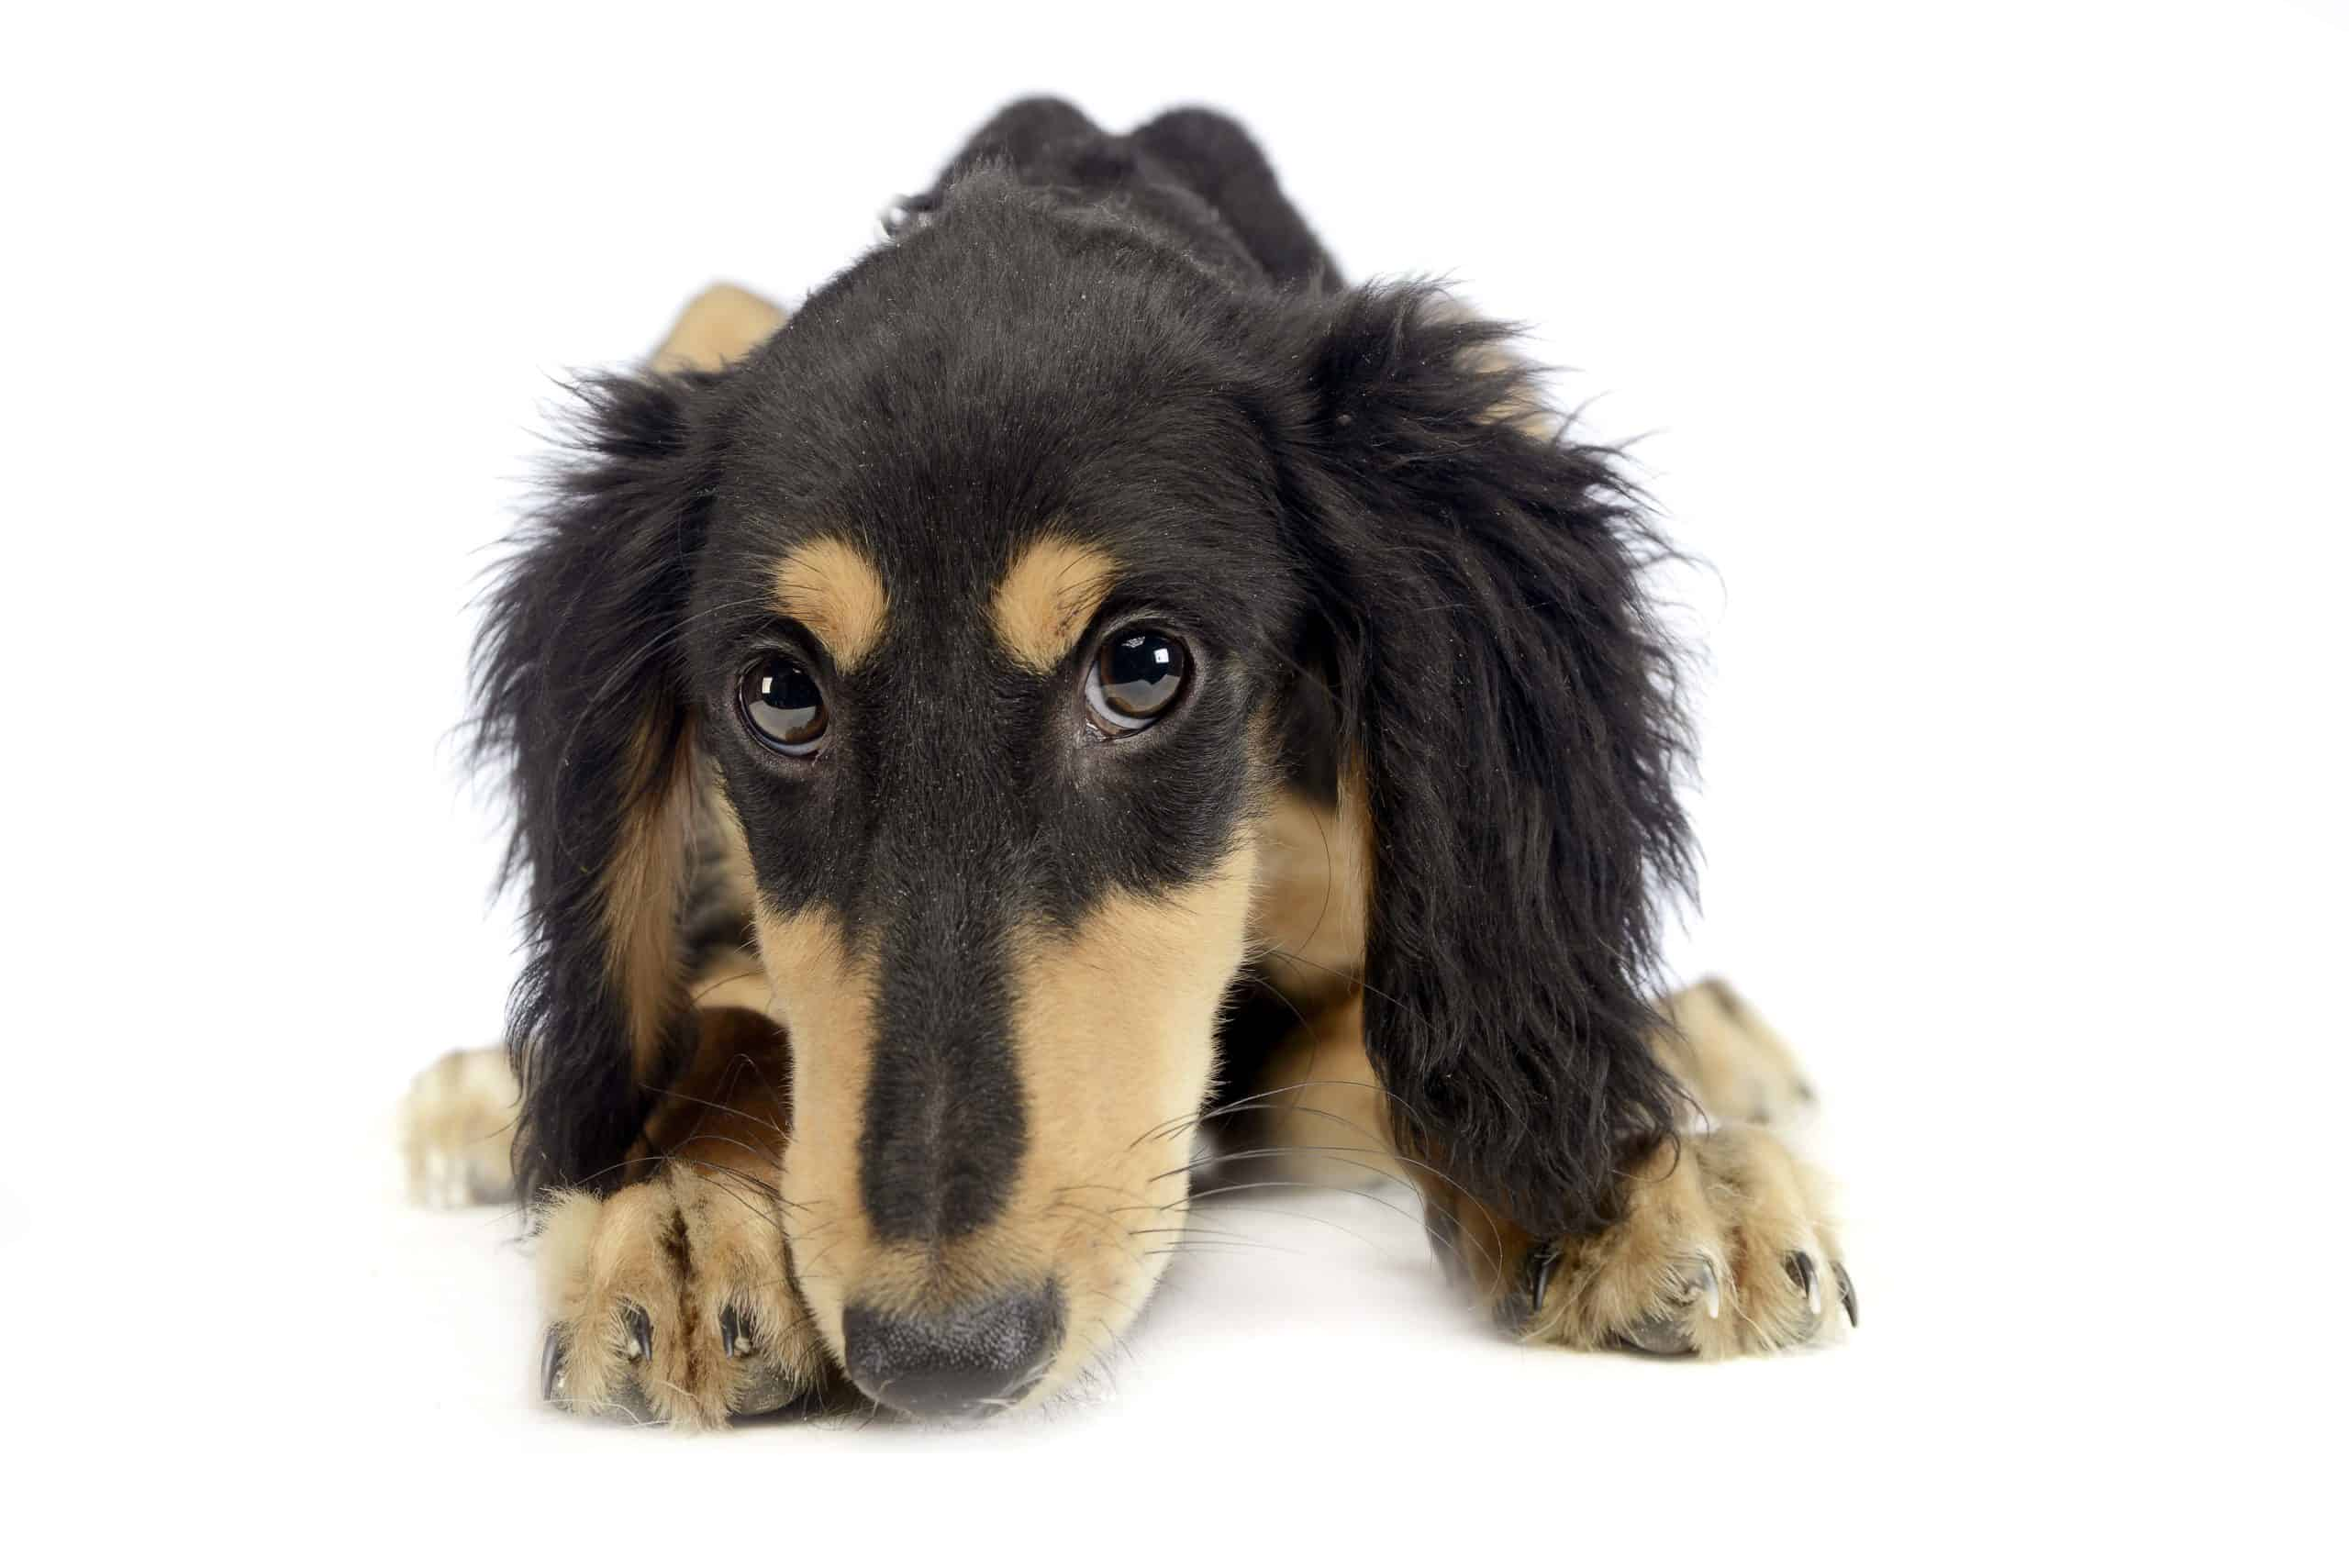 Saluki puppy on white background. The Saluki's body is finely shaped and muscular with a broad back and deeply recessed chest. There are two varieties of the Saluki, the feathered and the smooth-haired.